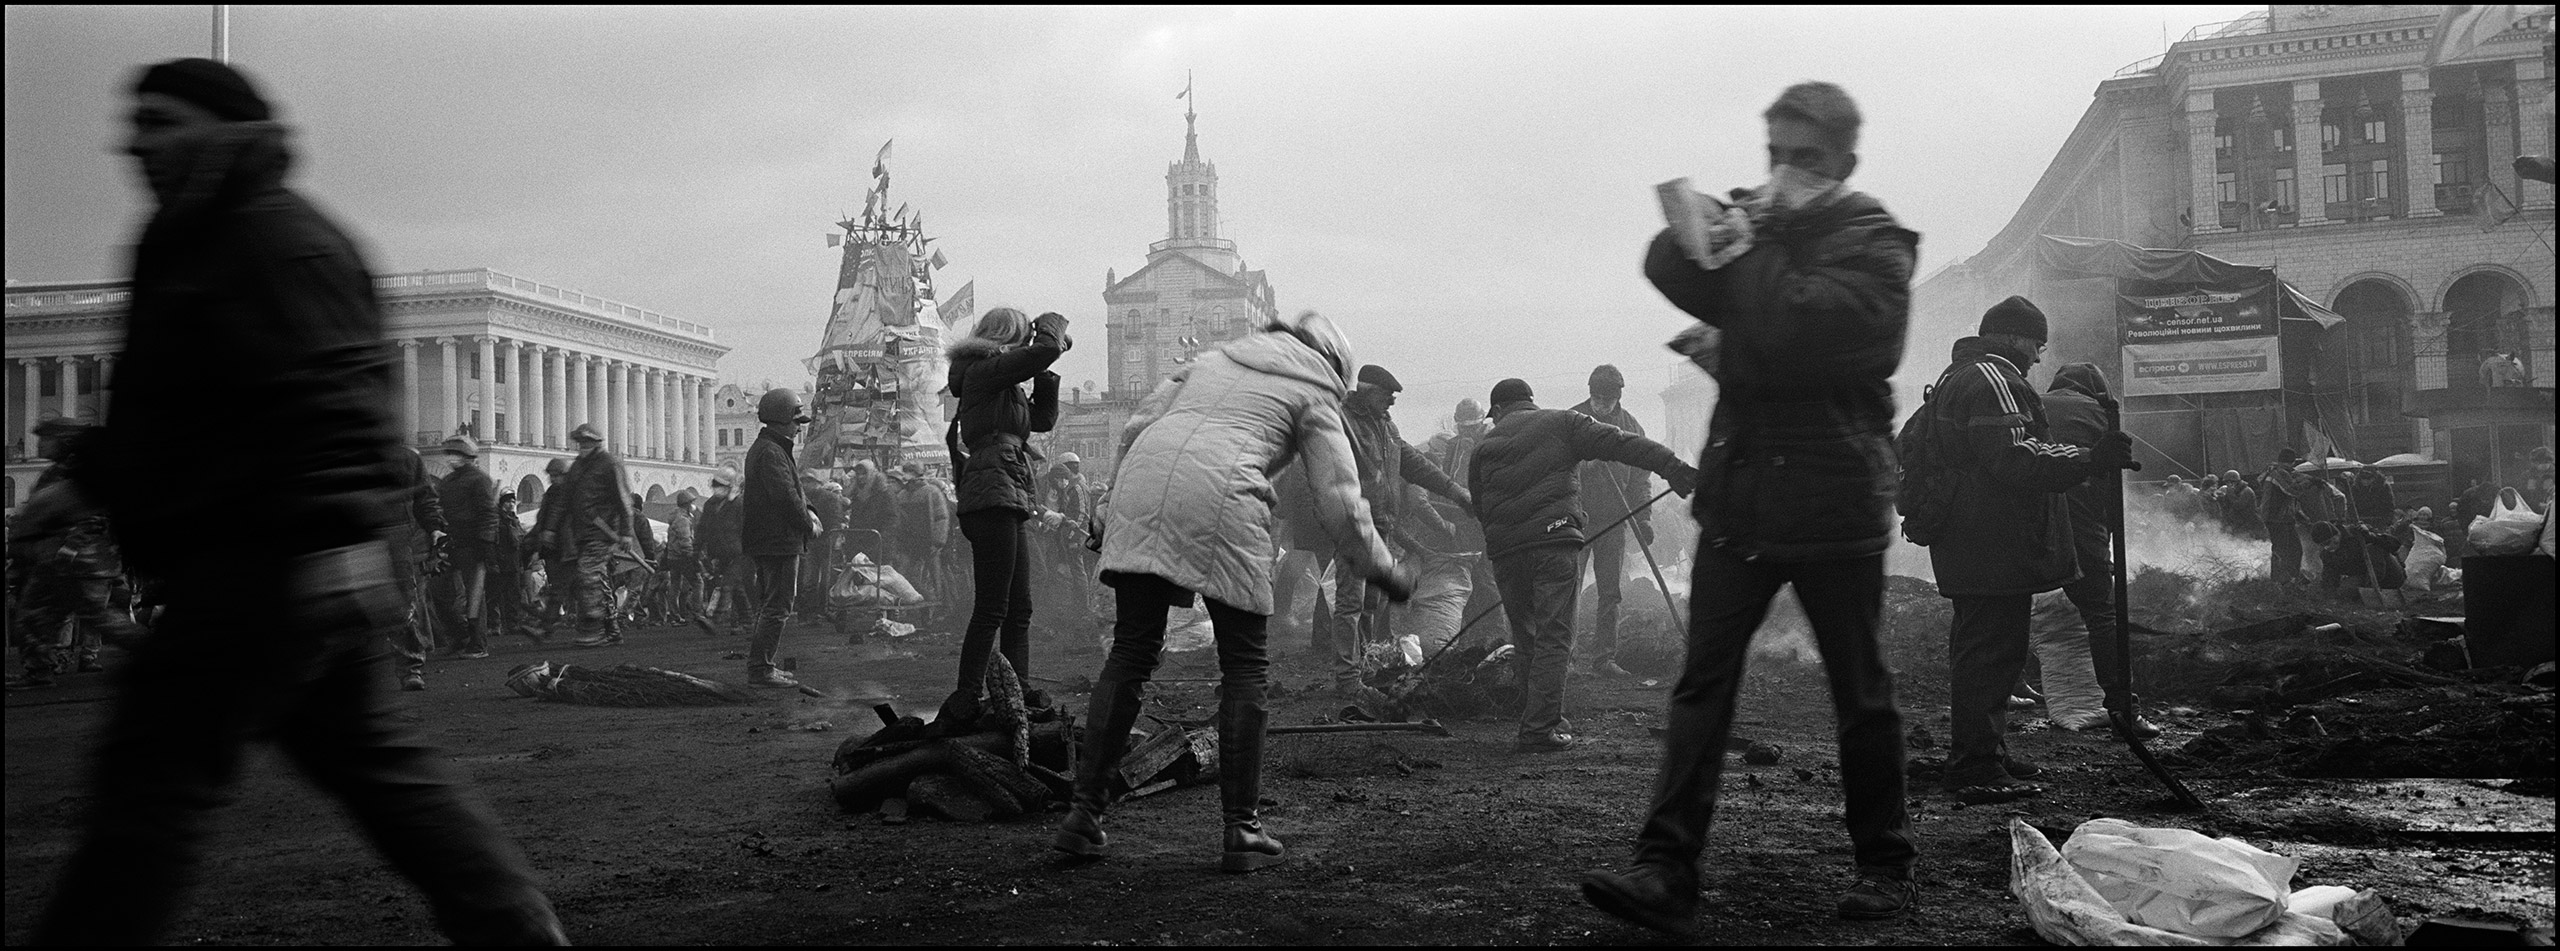 Protesters clean away debris and re-build barricades in Independence (Maidan) Square after a long night of clashes with riot police. Kiev, Ukraine, February 2014.